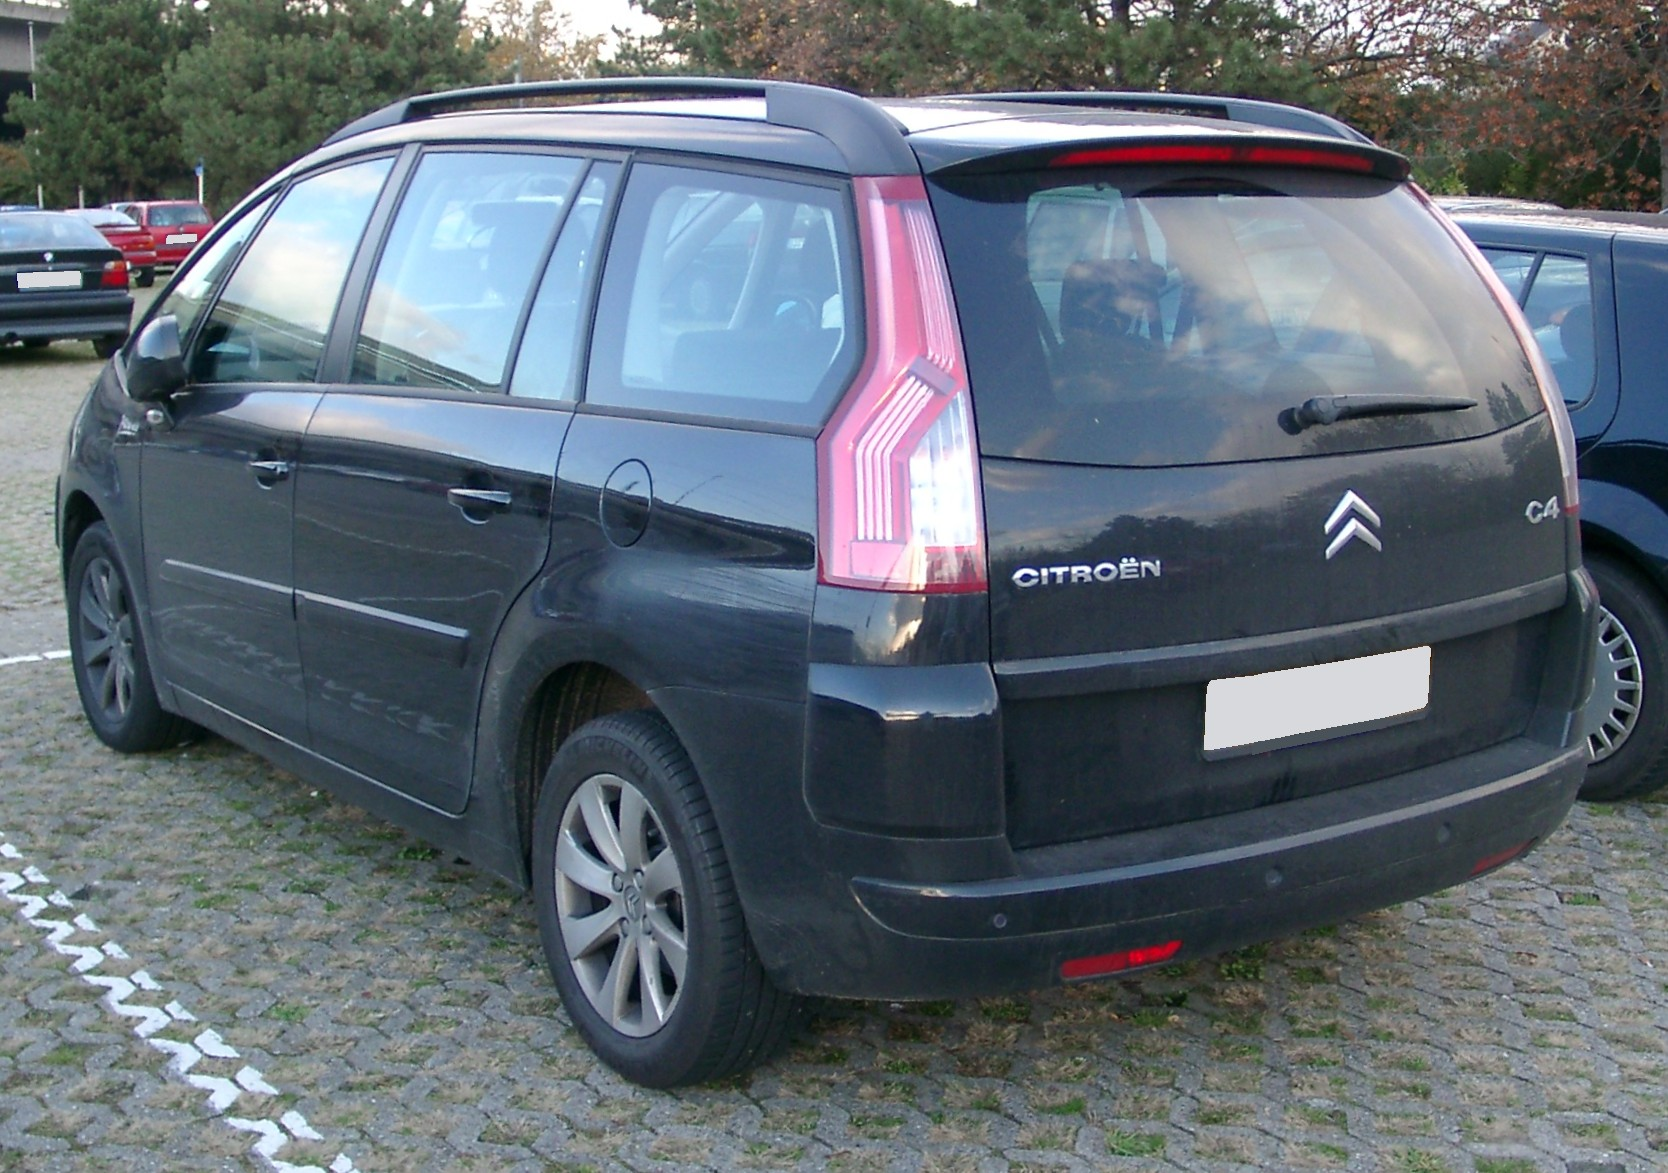 citroen grand c4 picasso technical details history. Black Bedroom Furniture Sets. Home Design Ideas